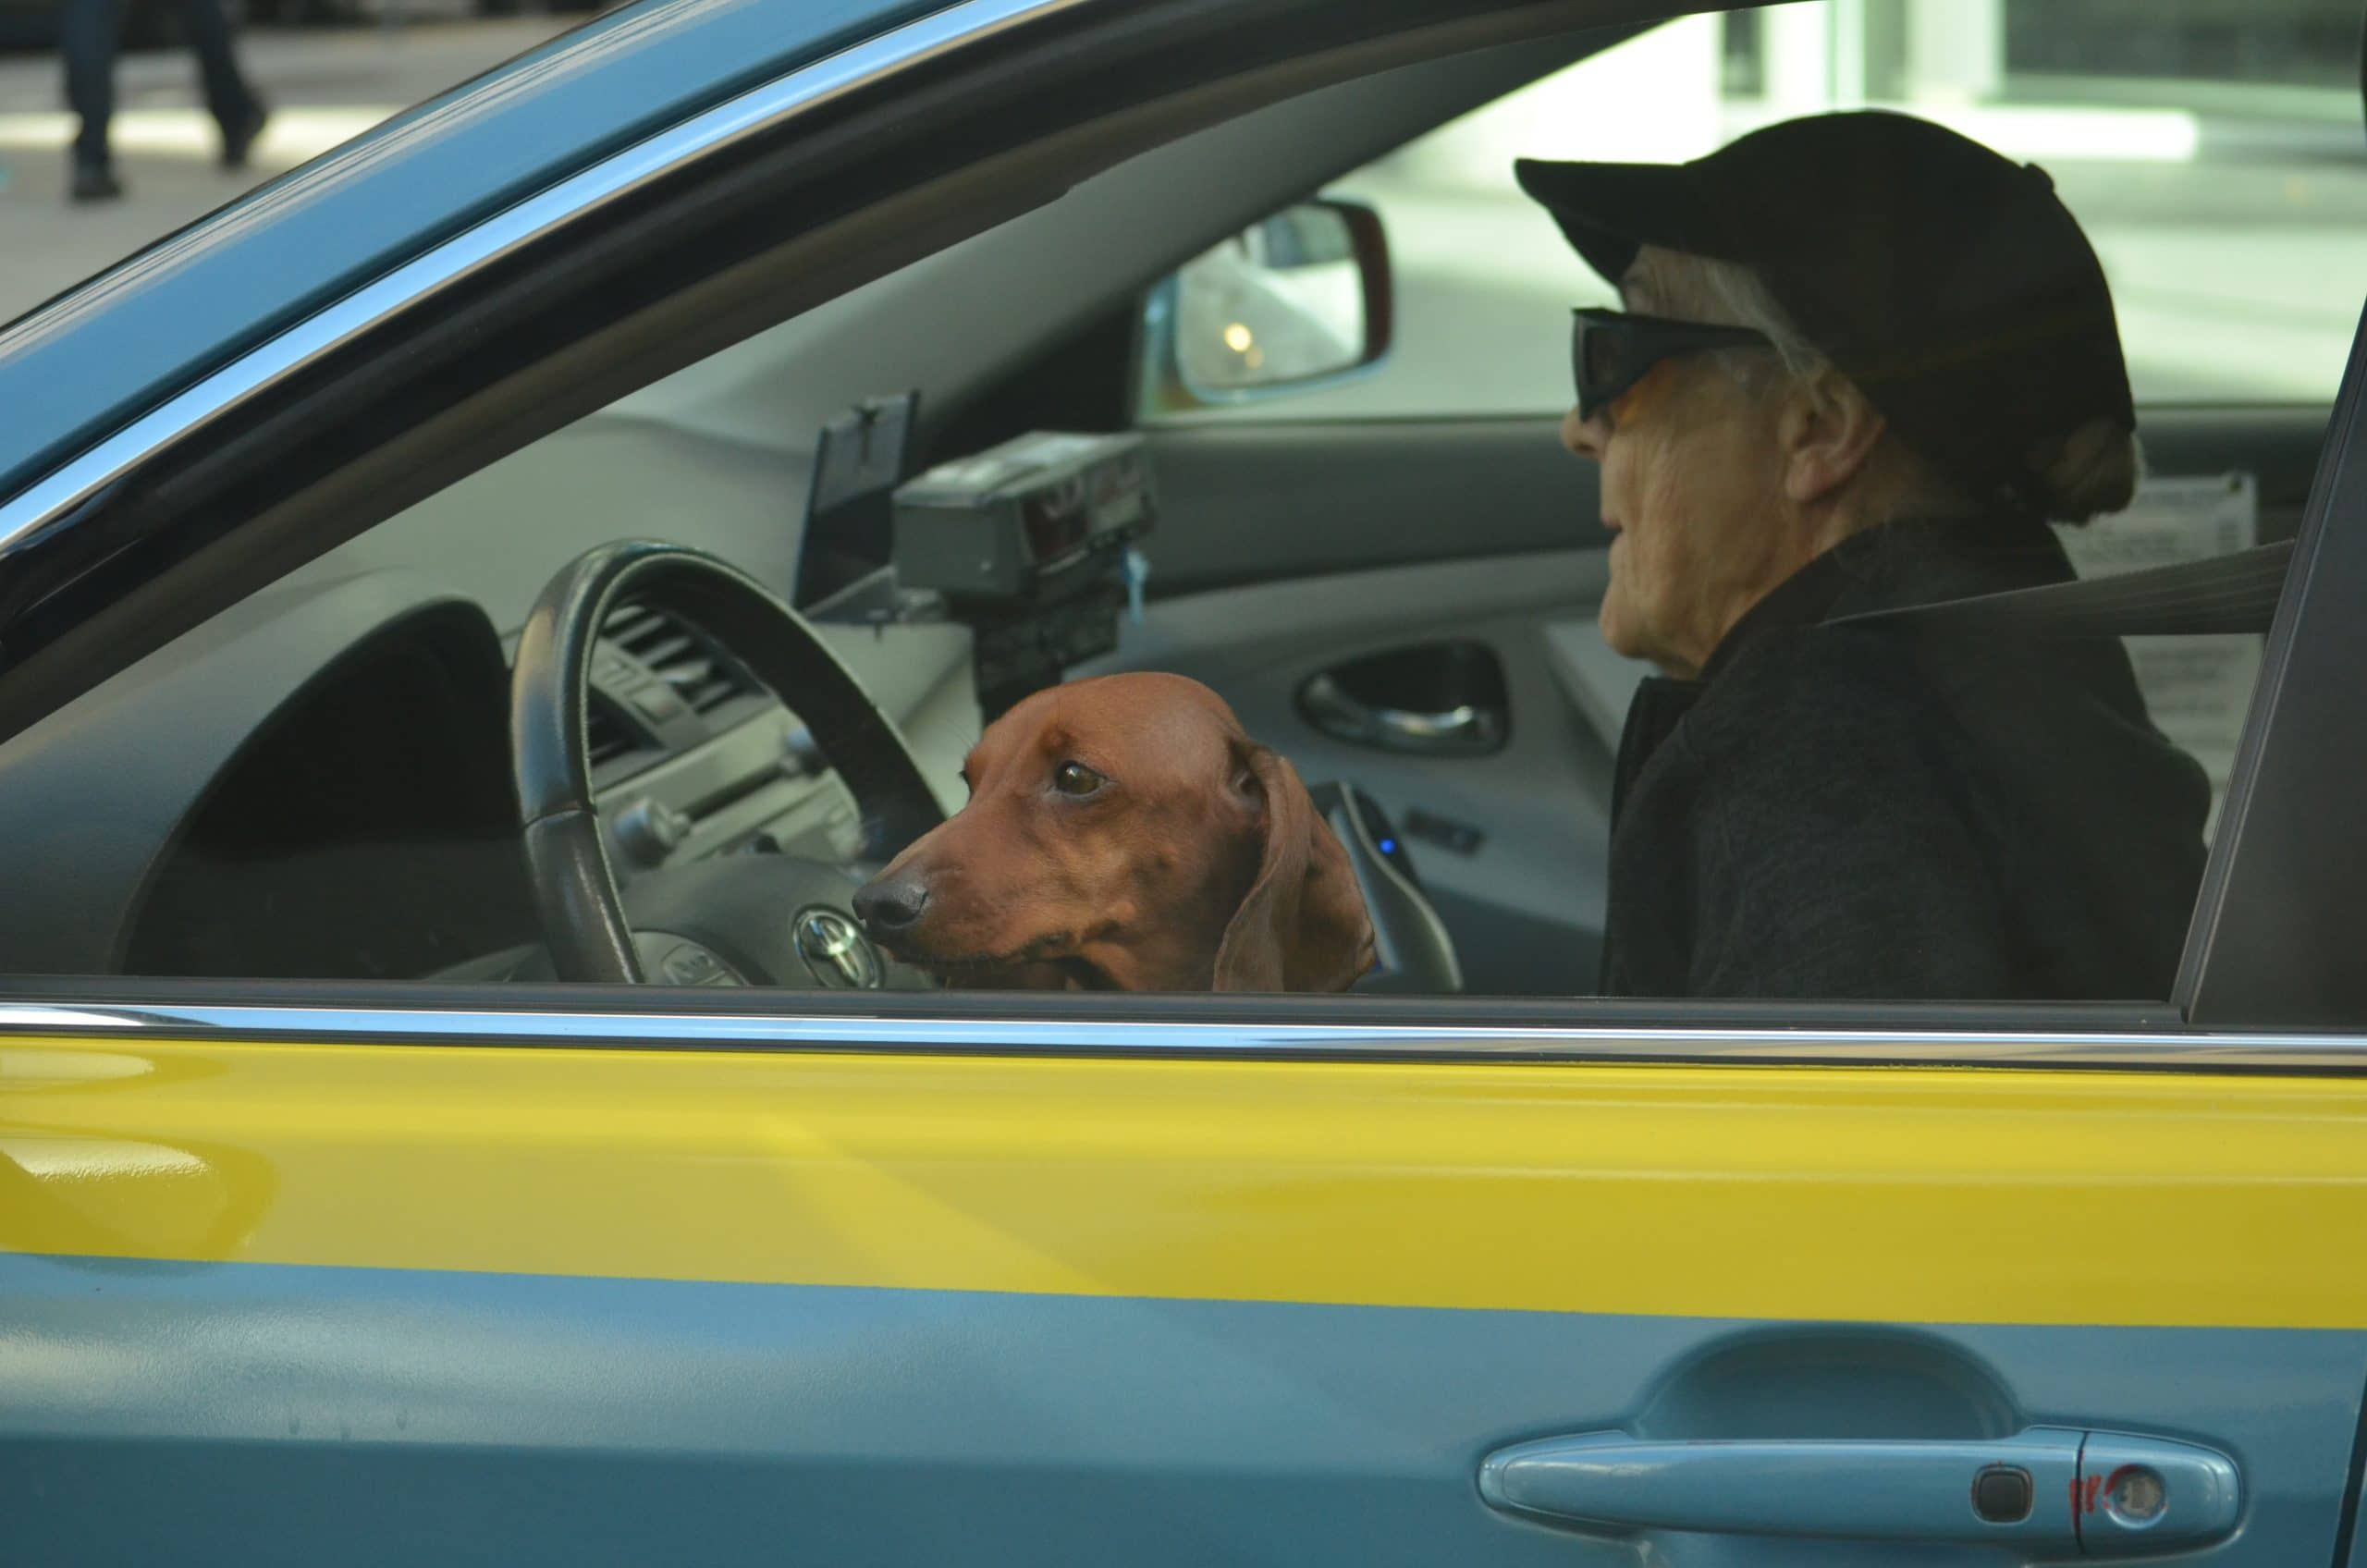 driver with dog and seatbelt on